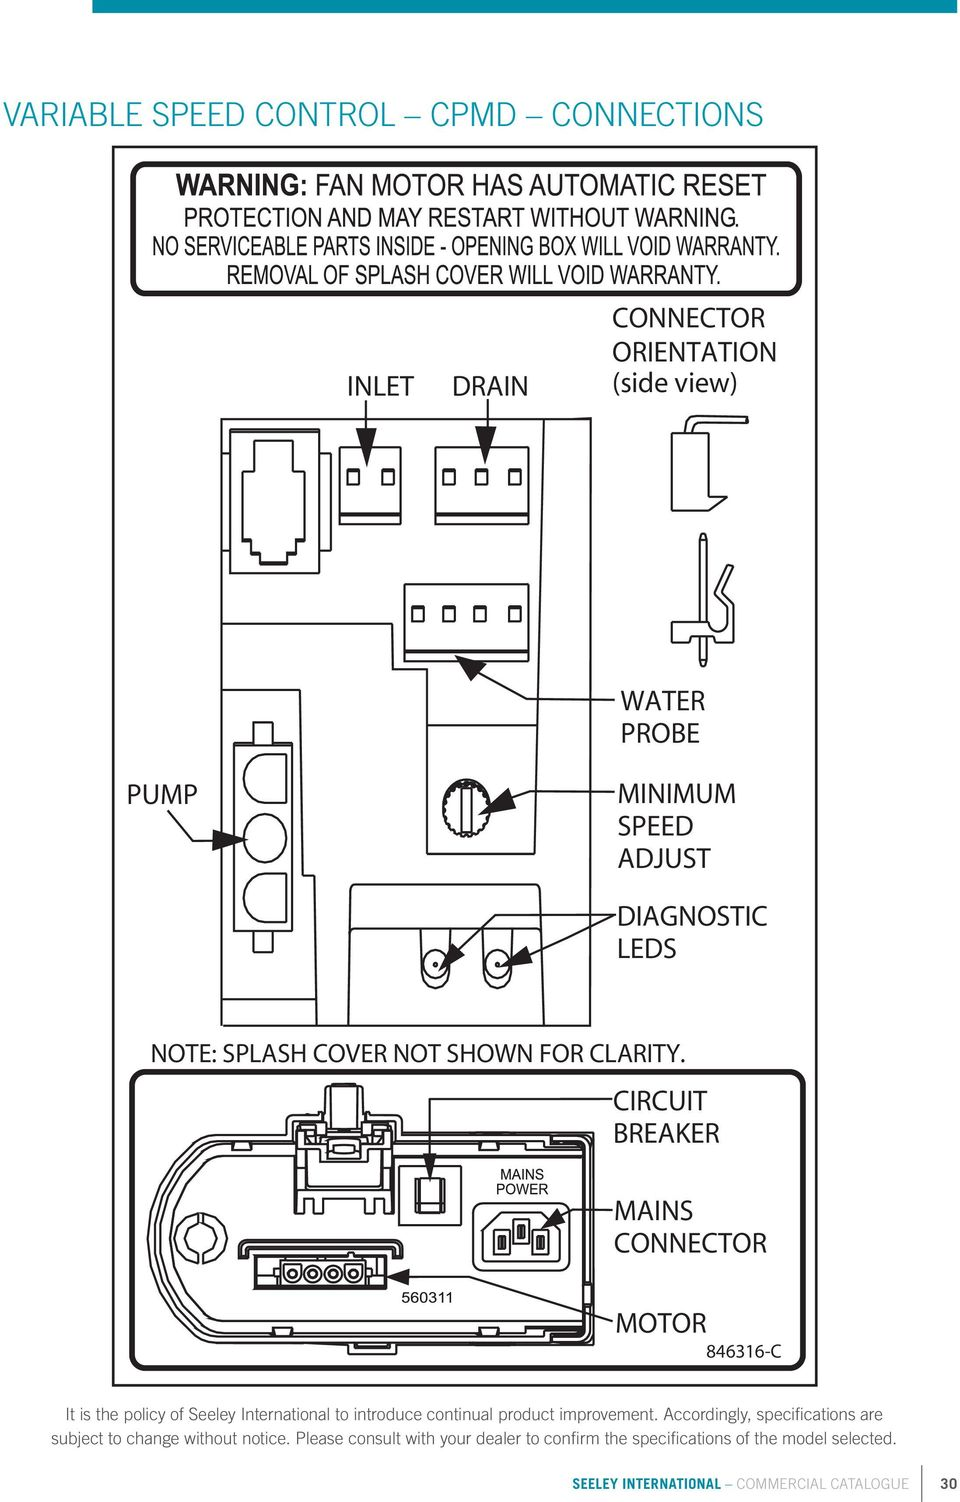 VARIABLE SD CONTROL CPMD CONNECTIONS - PDF Free Download on